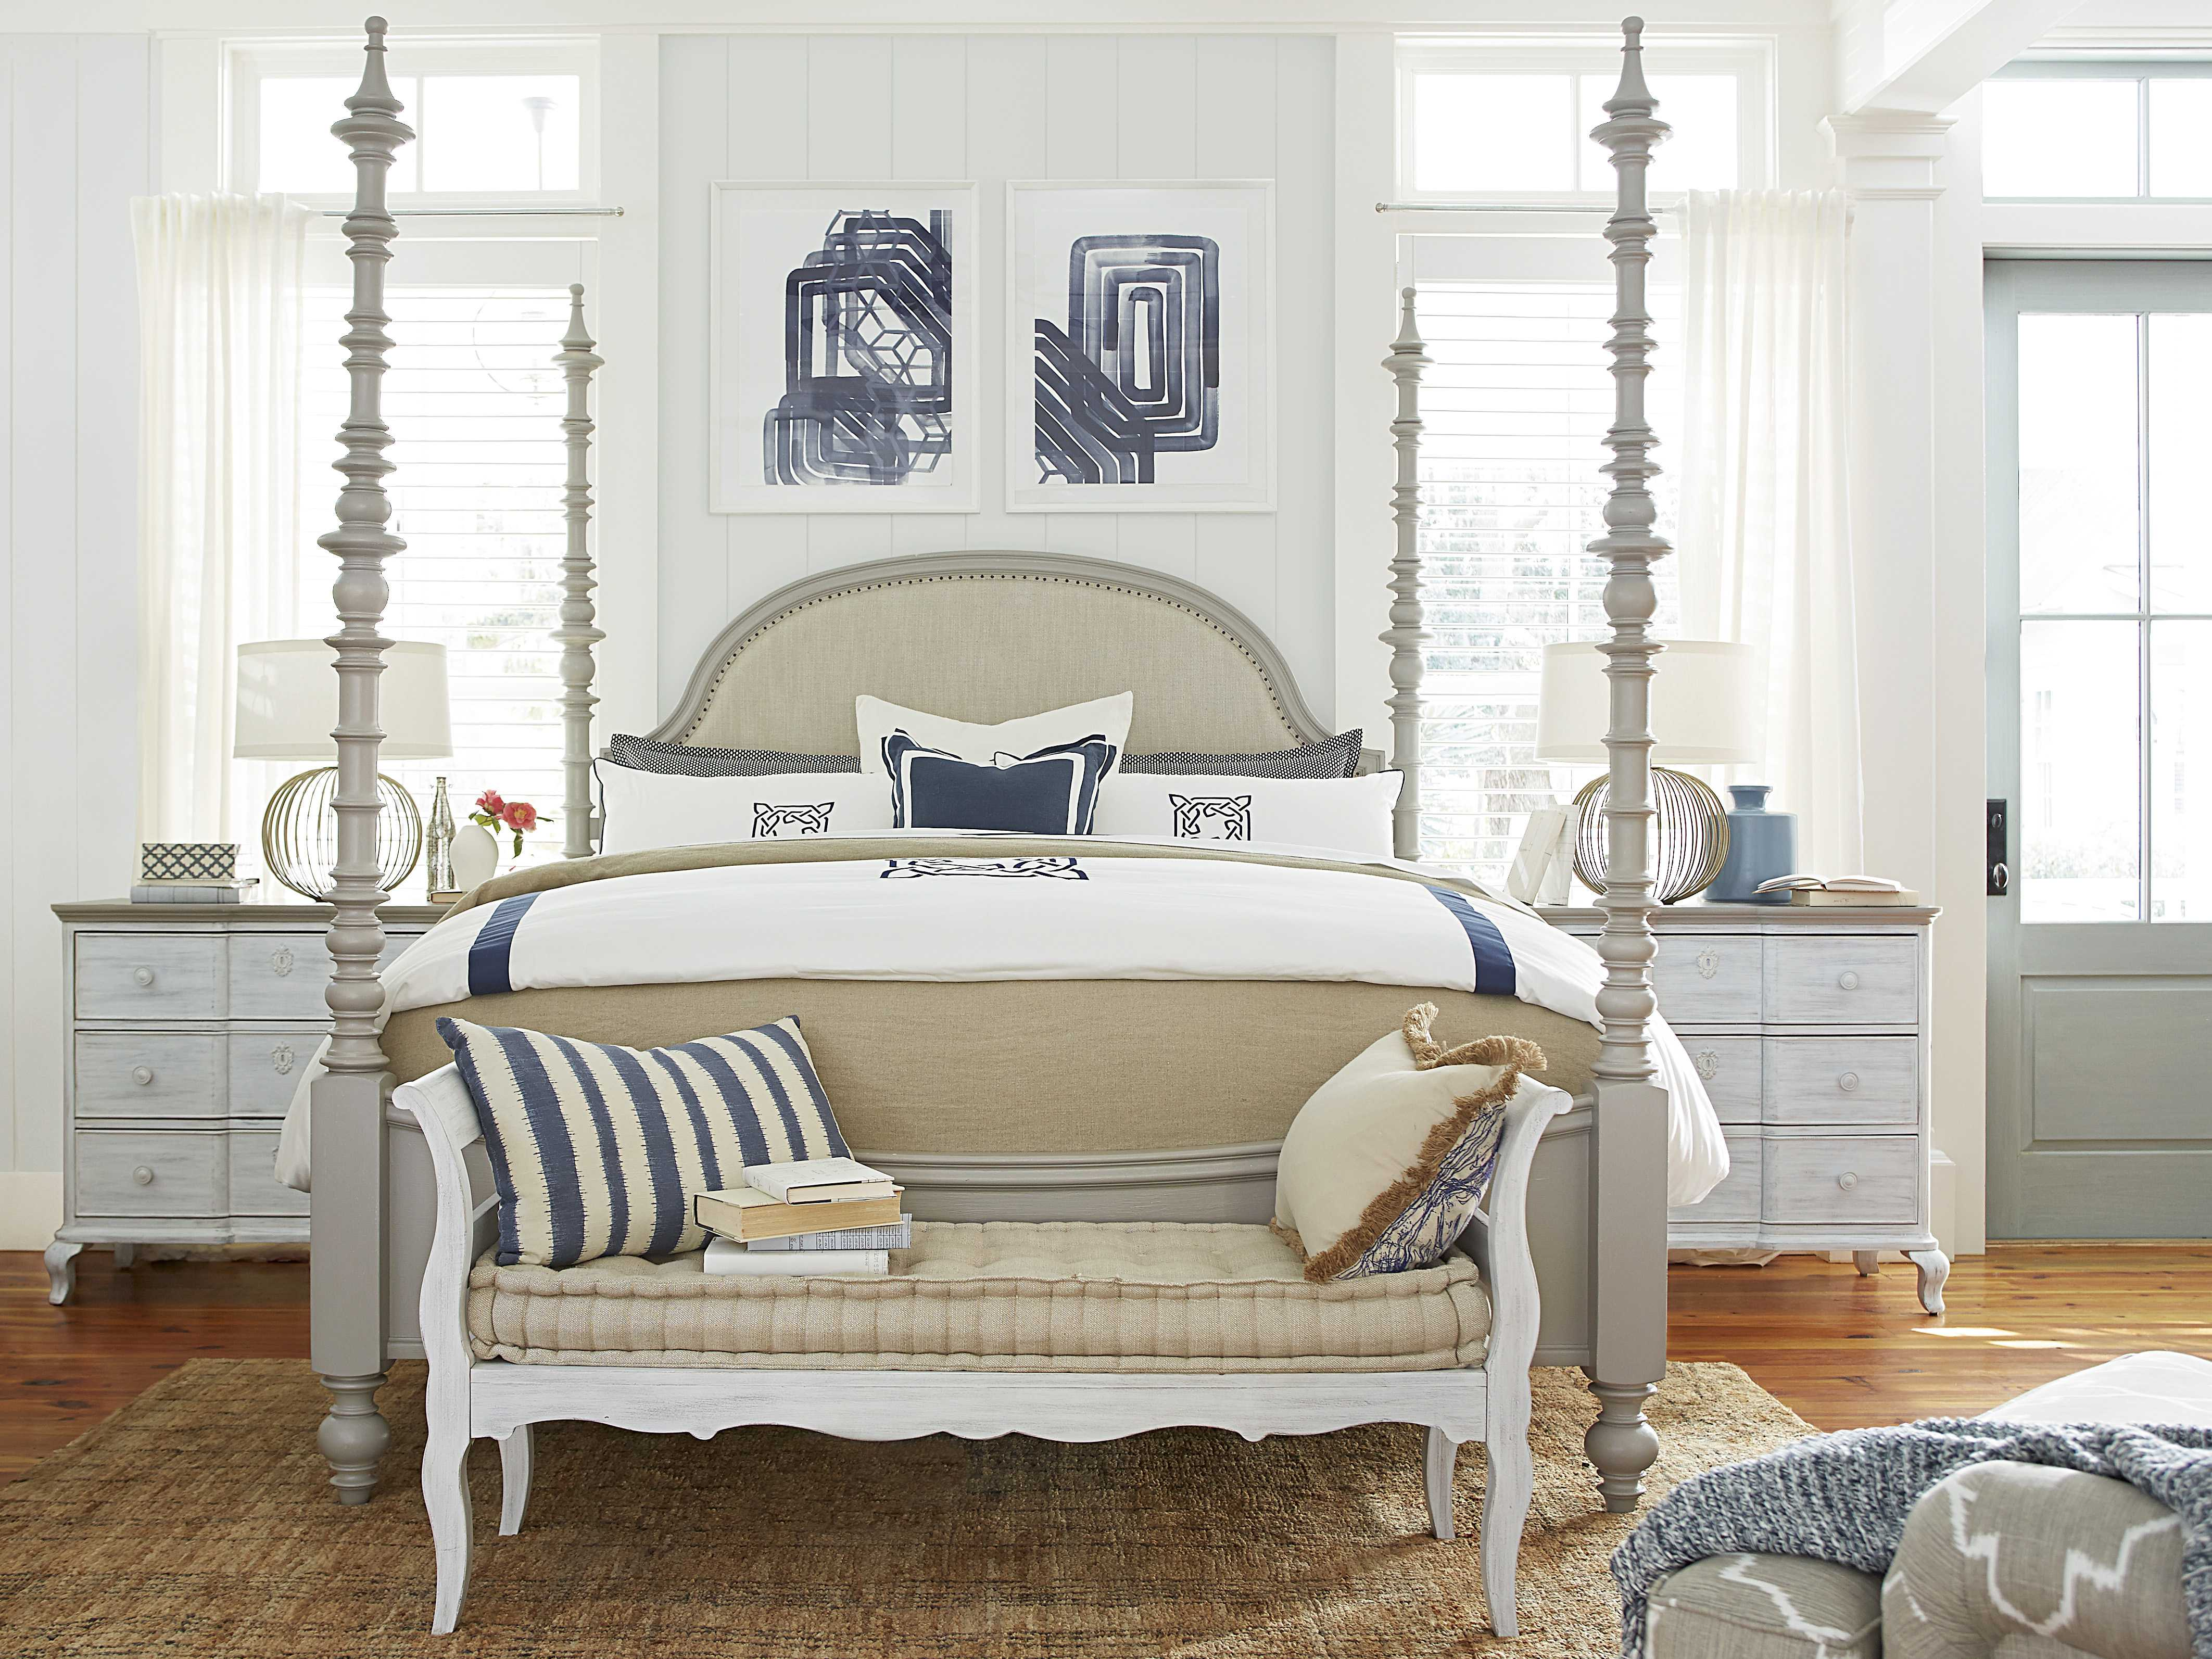 Paula deen home dogwood cobblestone poster bed bedroom set - Paula deen bedroom furniture collection ...